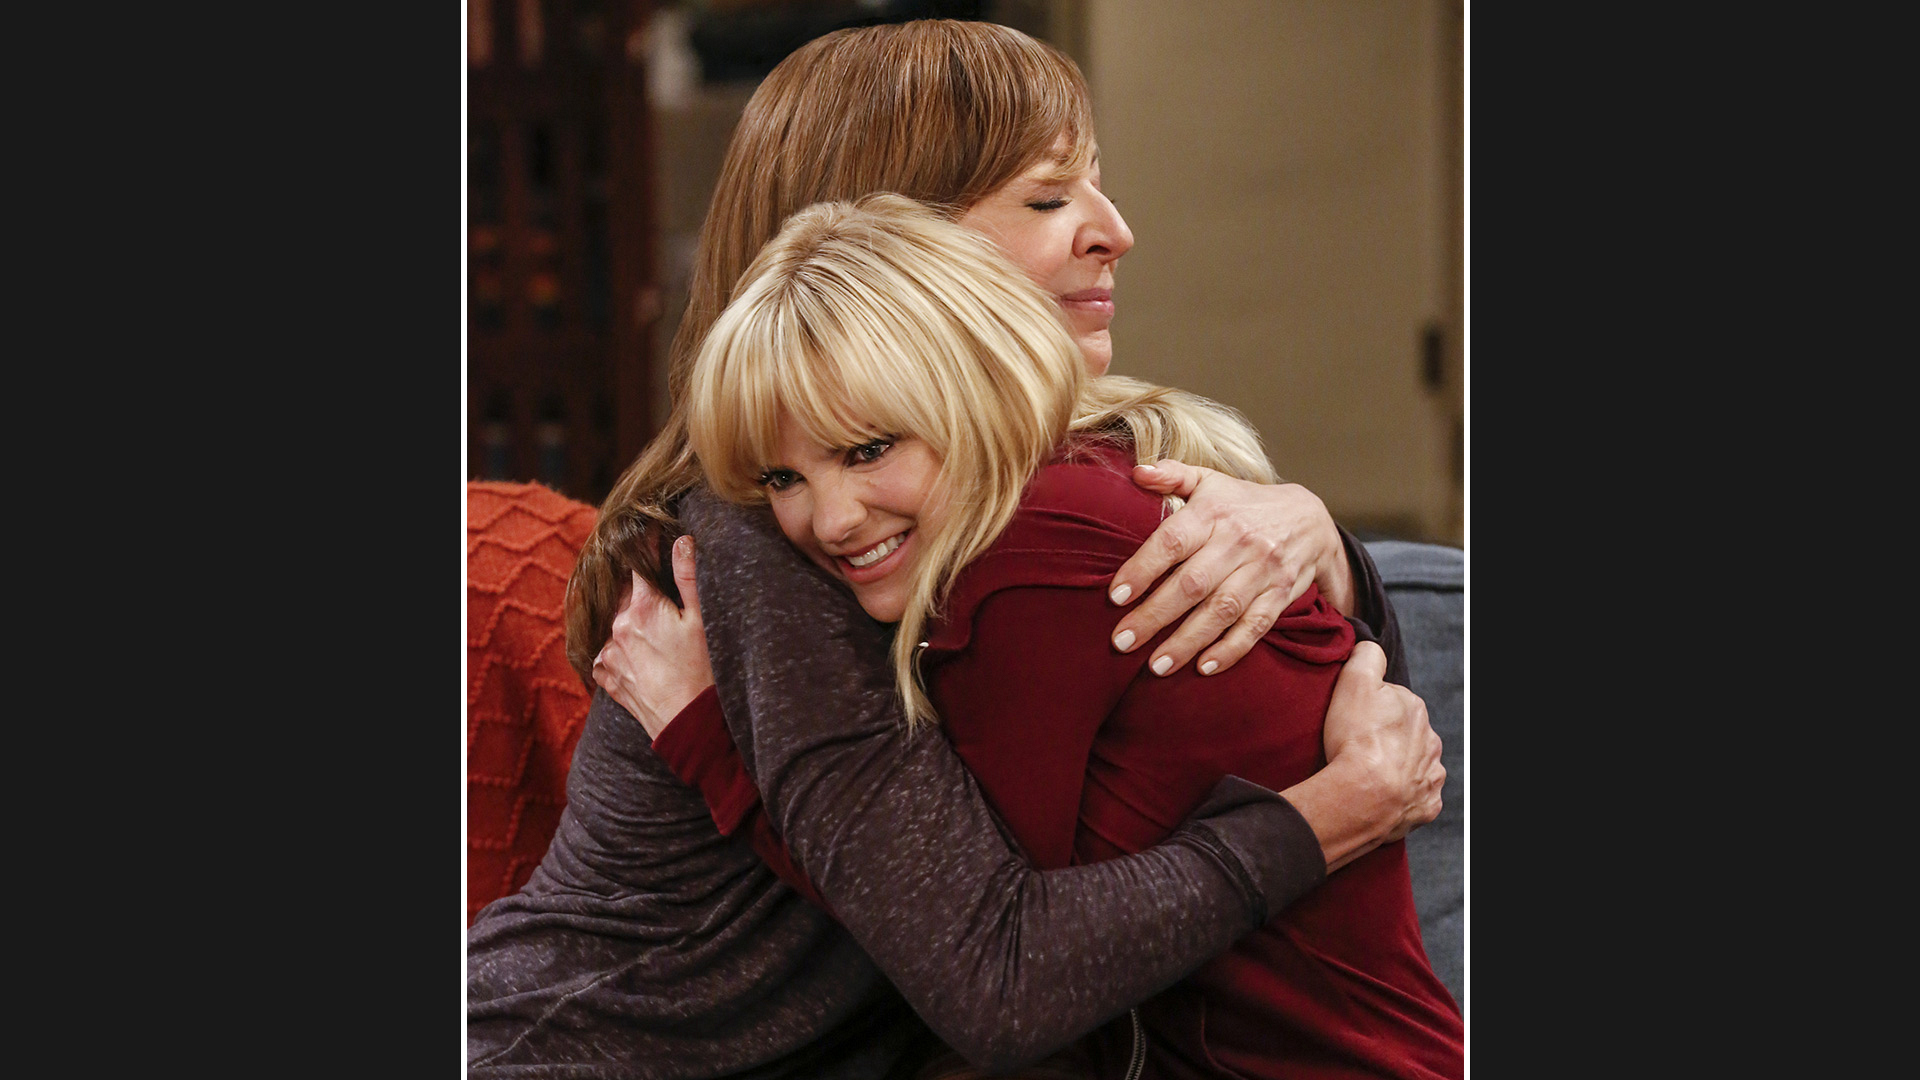 There's nothing quite like a hug from your mom.